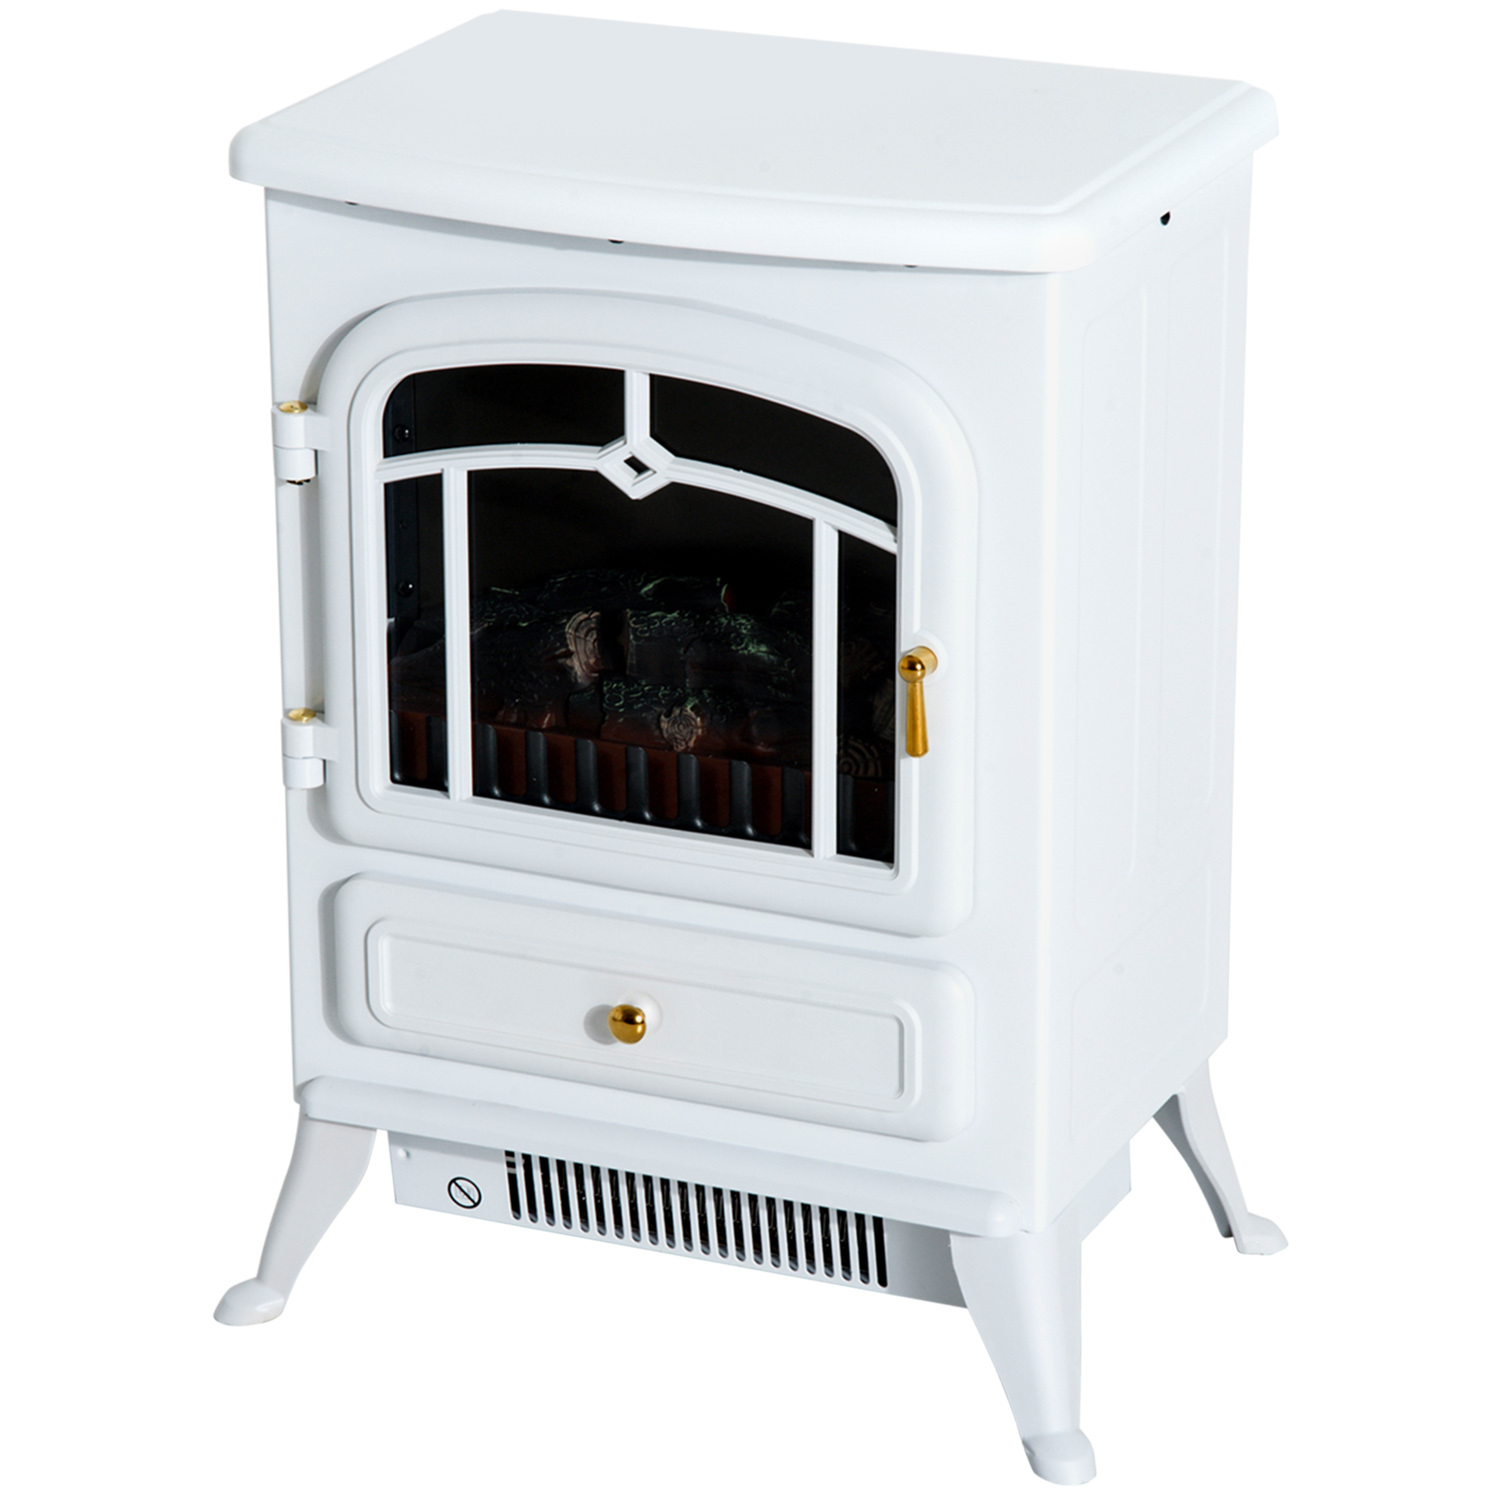 HOMCOM-750-1500W-Portable-Electric-Fireplace-Stove-Heater-Adjustable-LED-Flames thumbnail 23